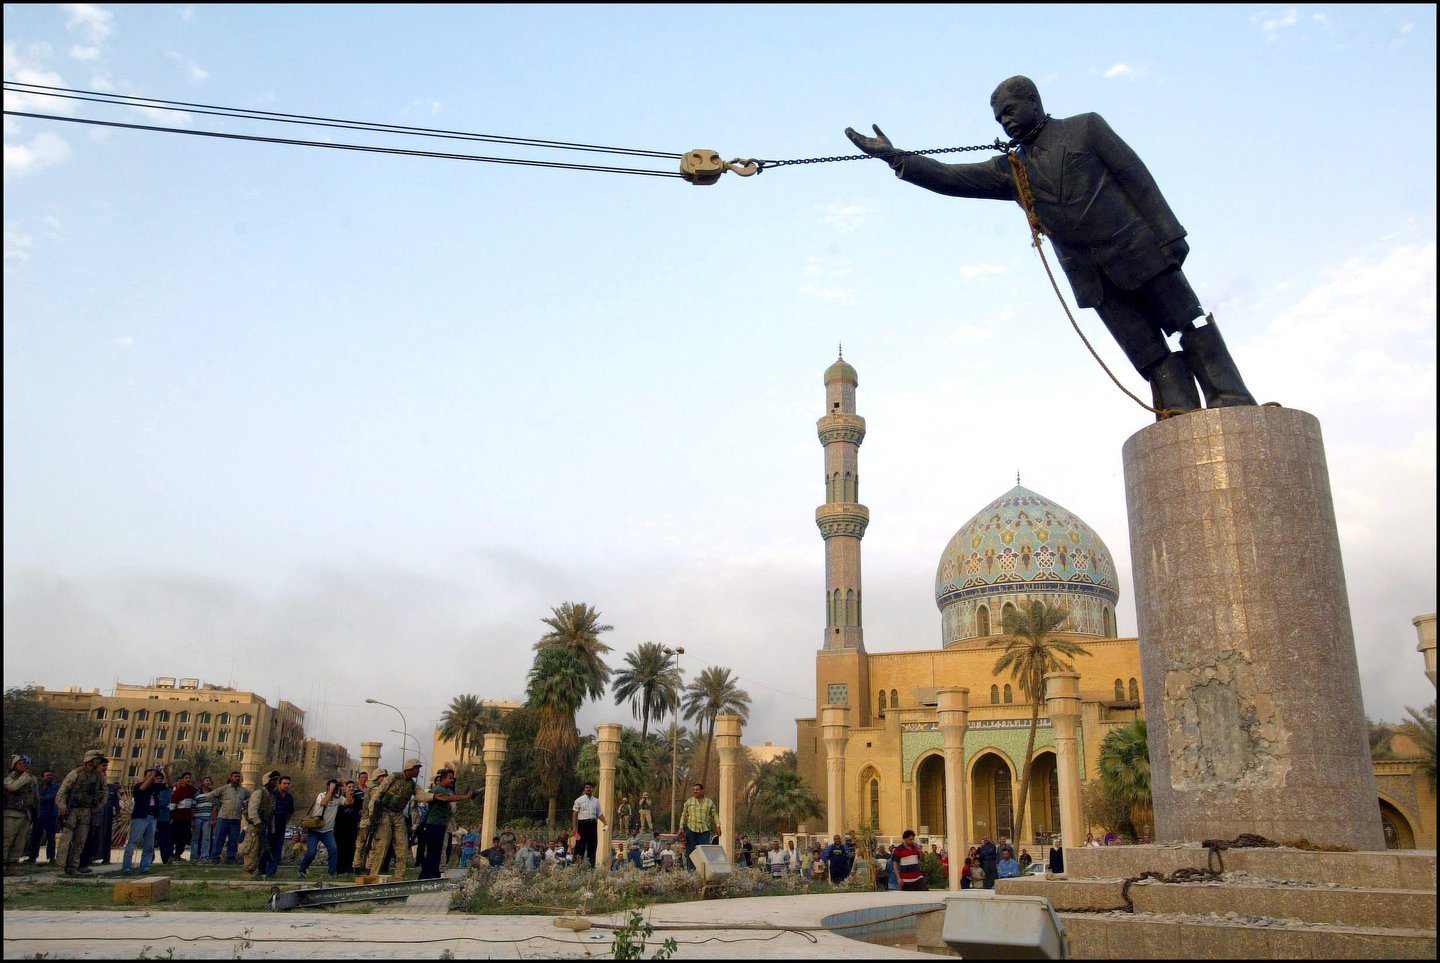 Operation Iraqi Freedom - Day 21: Us Troops Enter Central Baghdad And Topple Statue Of Saddam Hussein On April 9, 2003 In Baghdad, Iraq